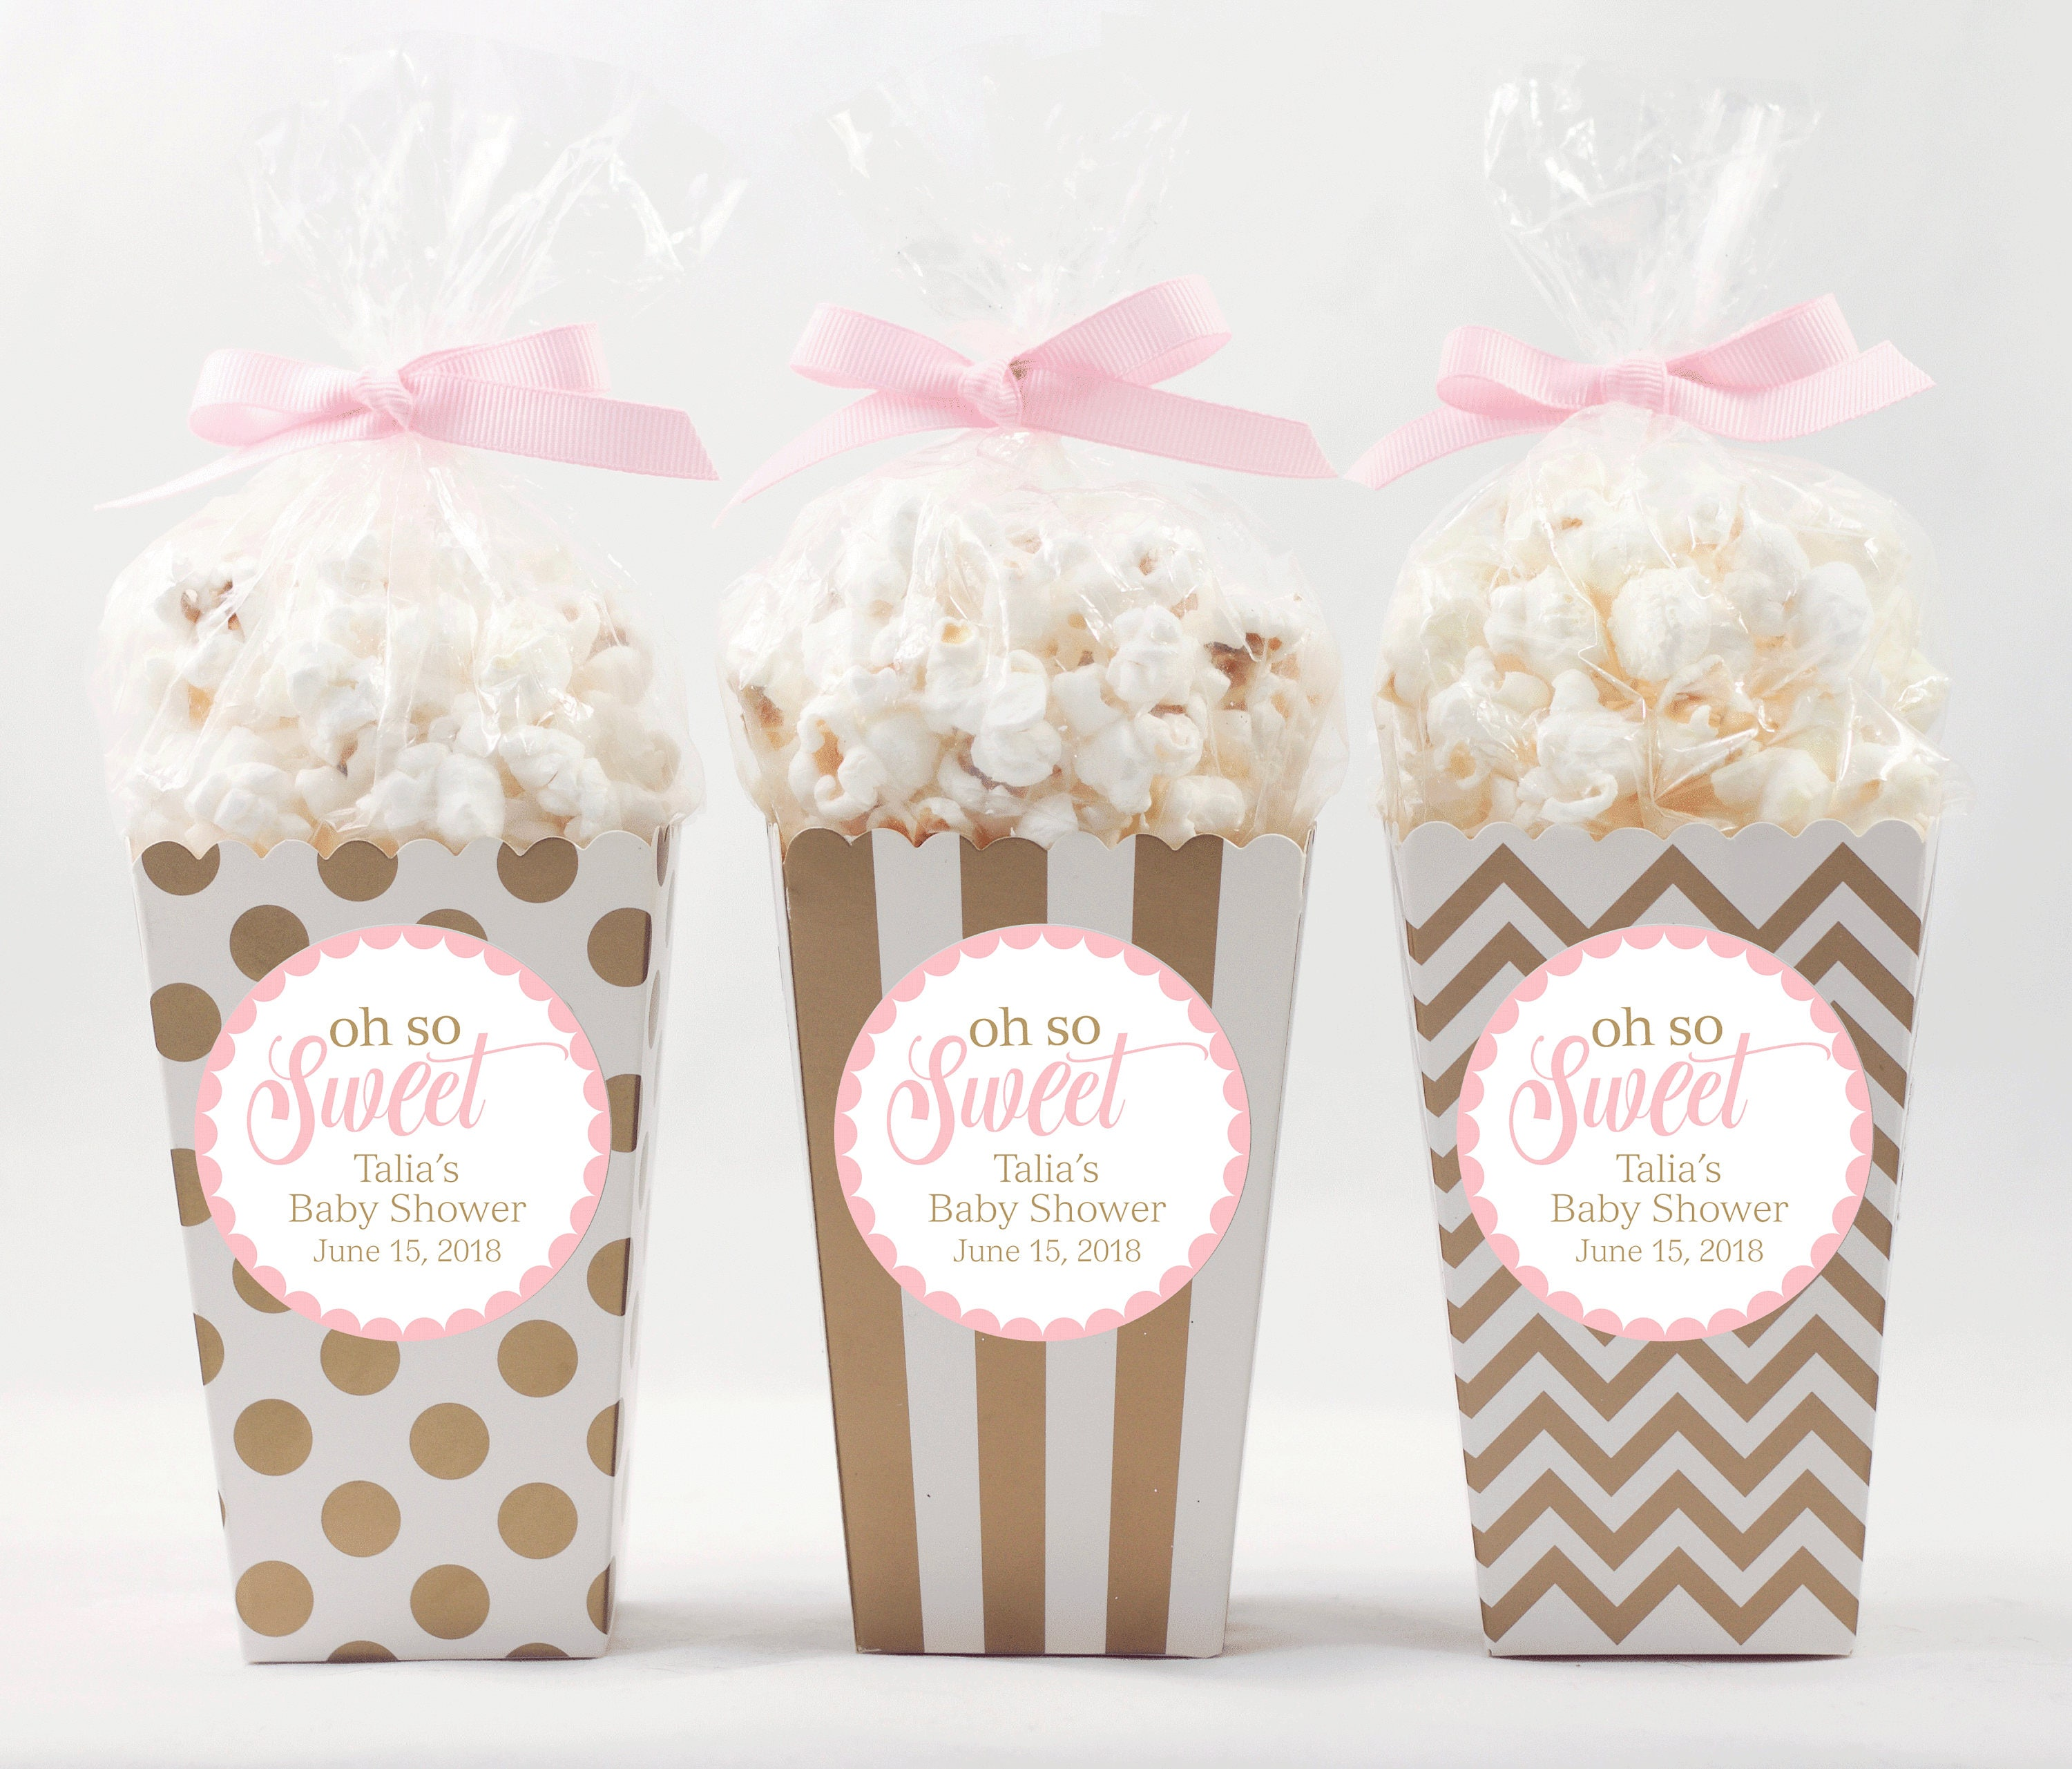 12 Custom Popcorn Box Favors Personalized Labels Baby